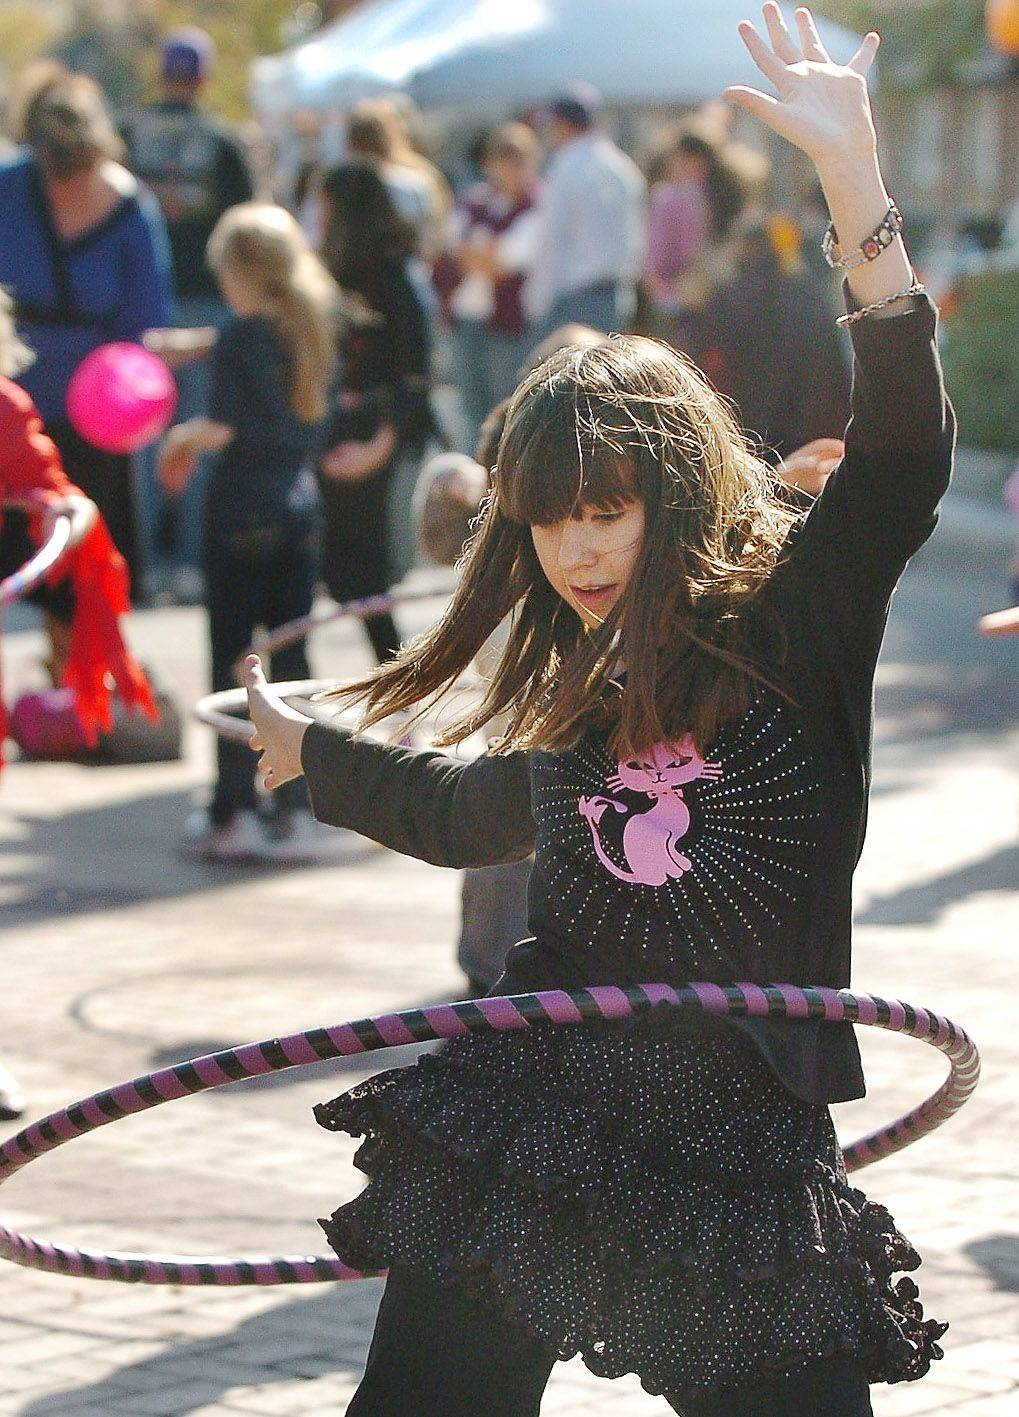 13-year-old Meghan Lecey tries her luck at hula hooping at Mount Prospect's sixth-annual Fall Festival.